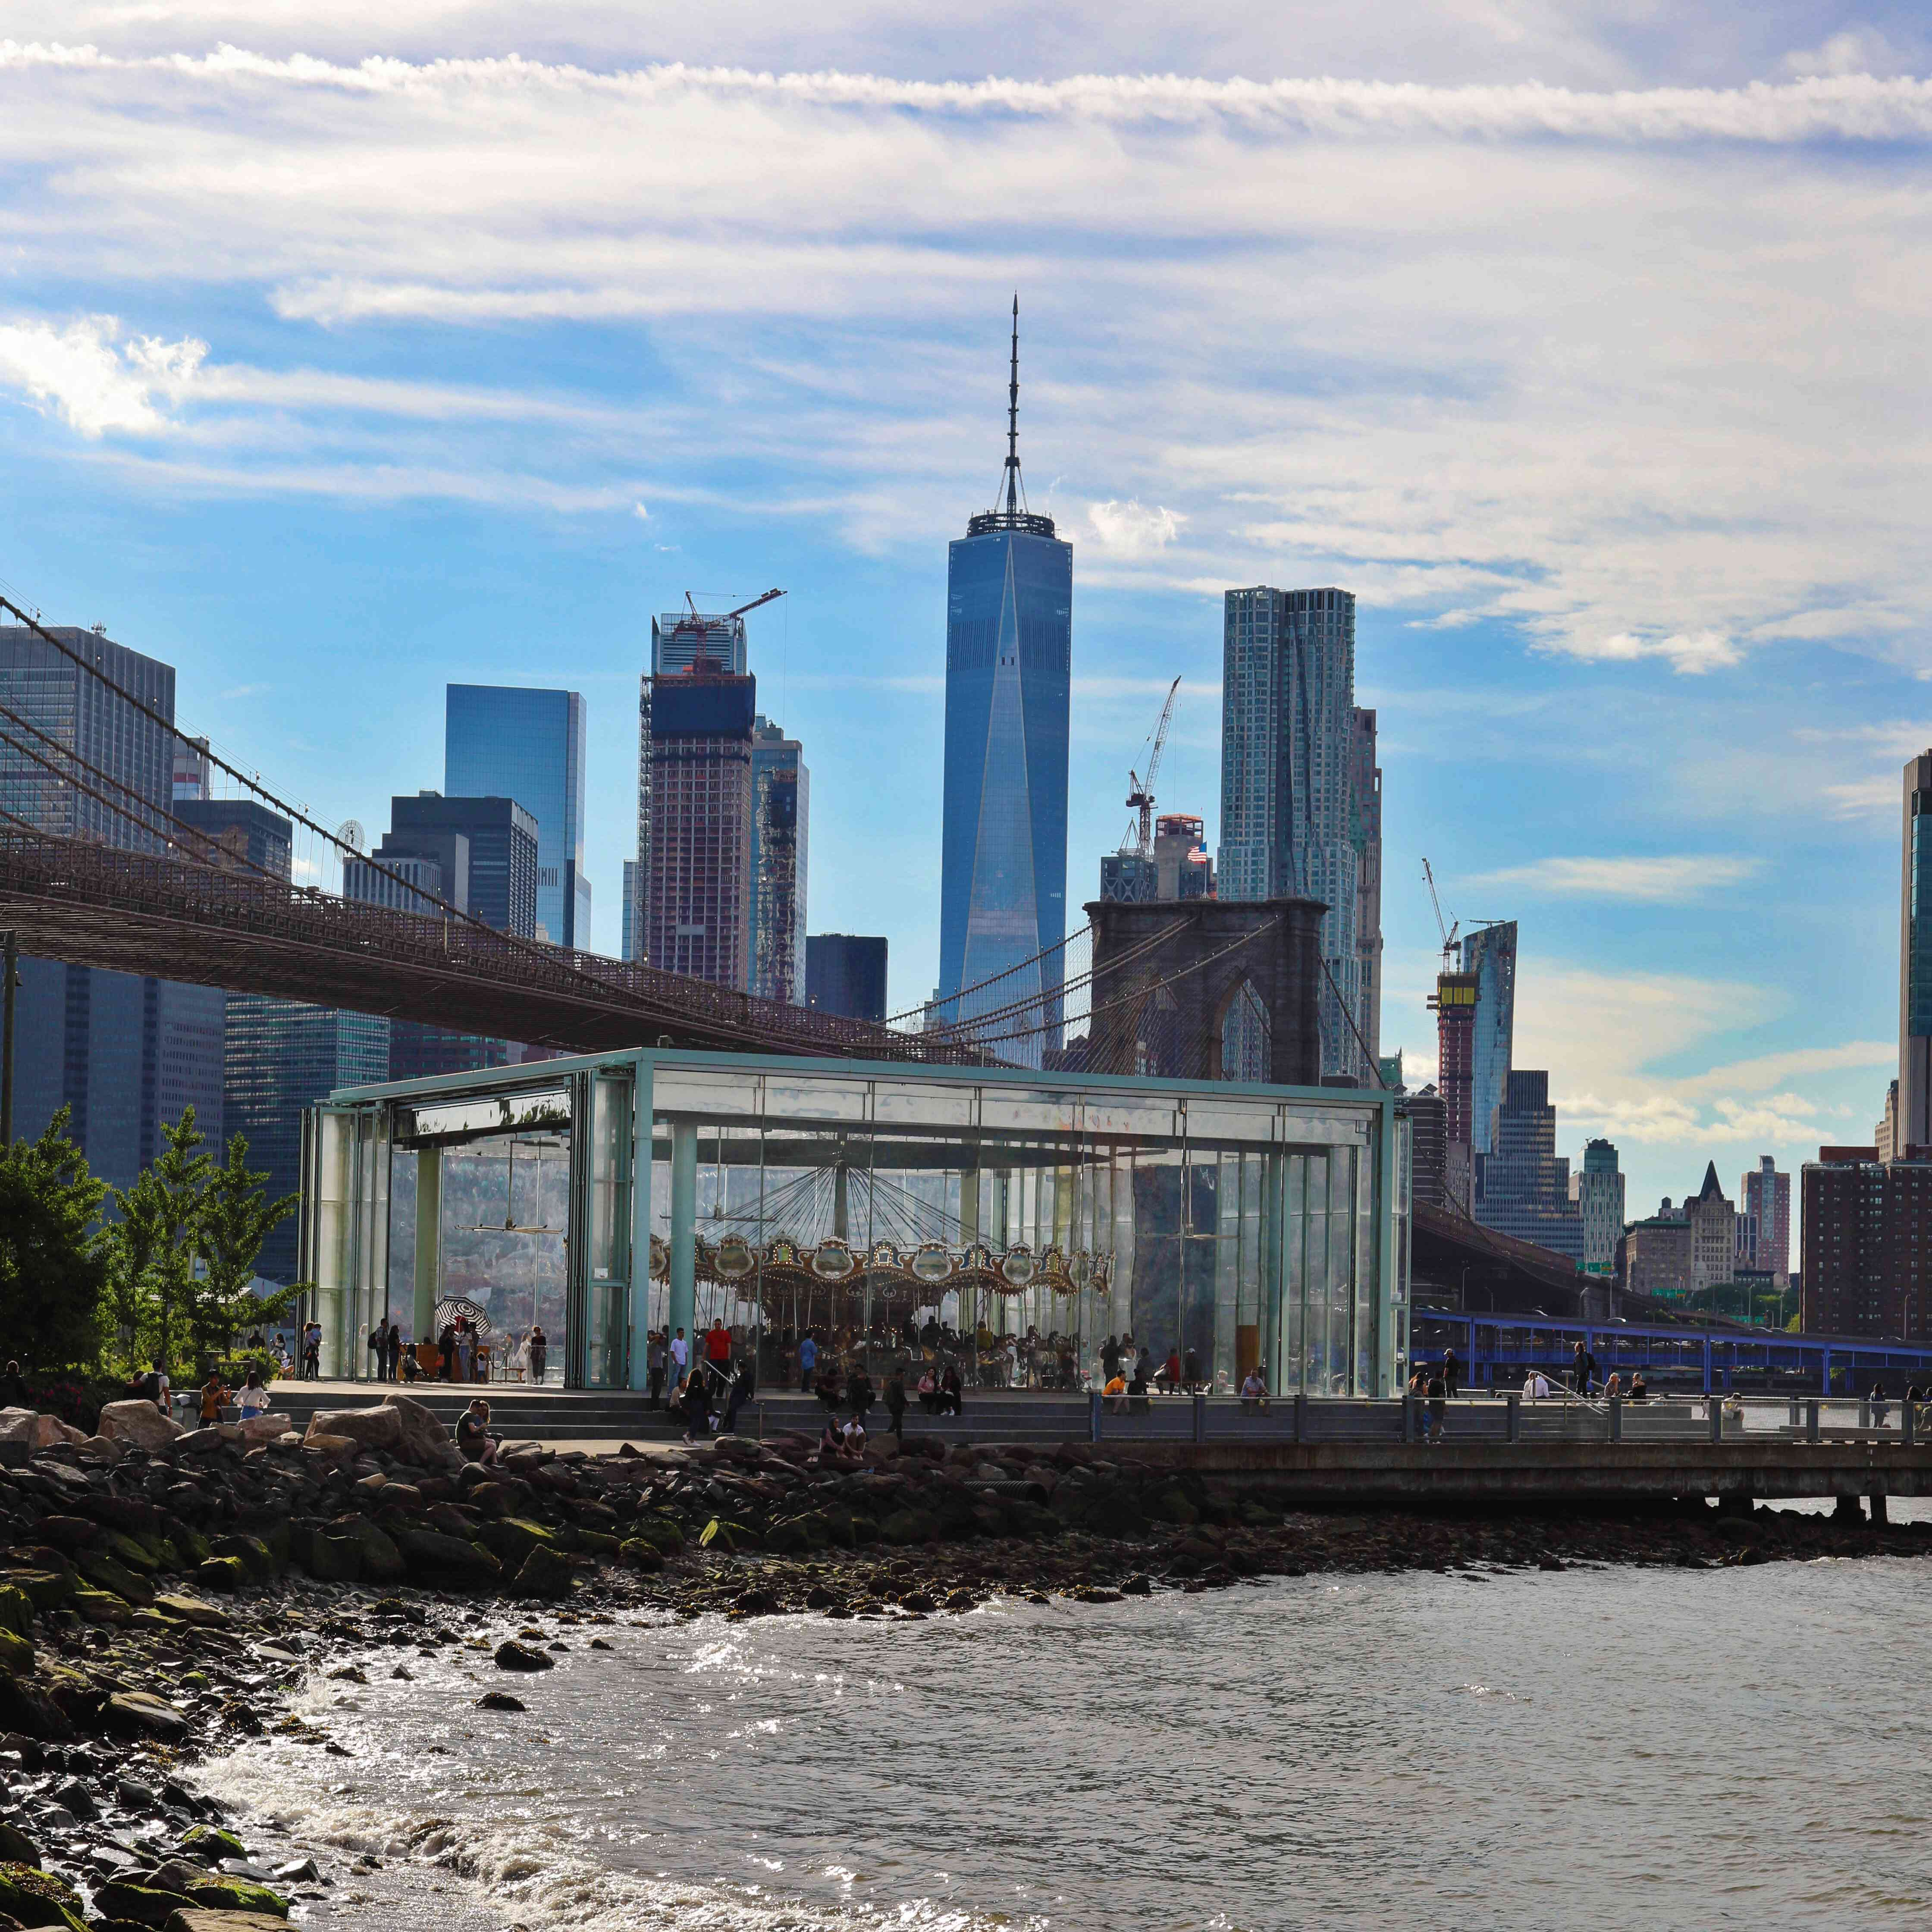 A view of Jane's Carousel with the Manhattan Skyline and the Brooklyn Bridge behind it